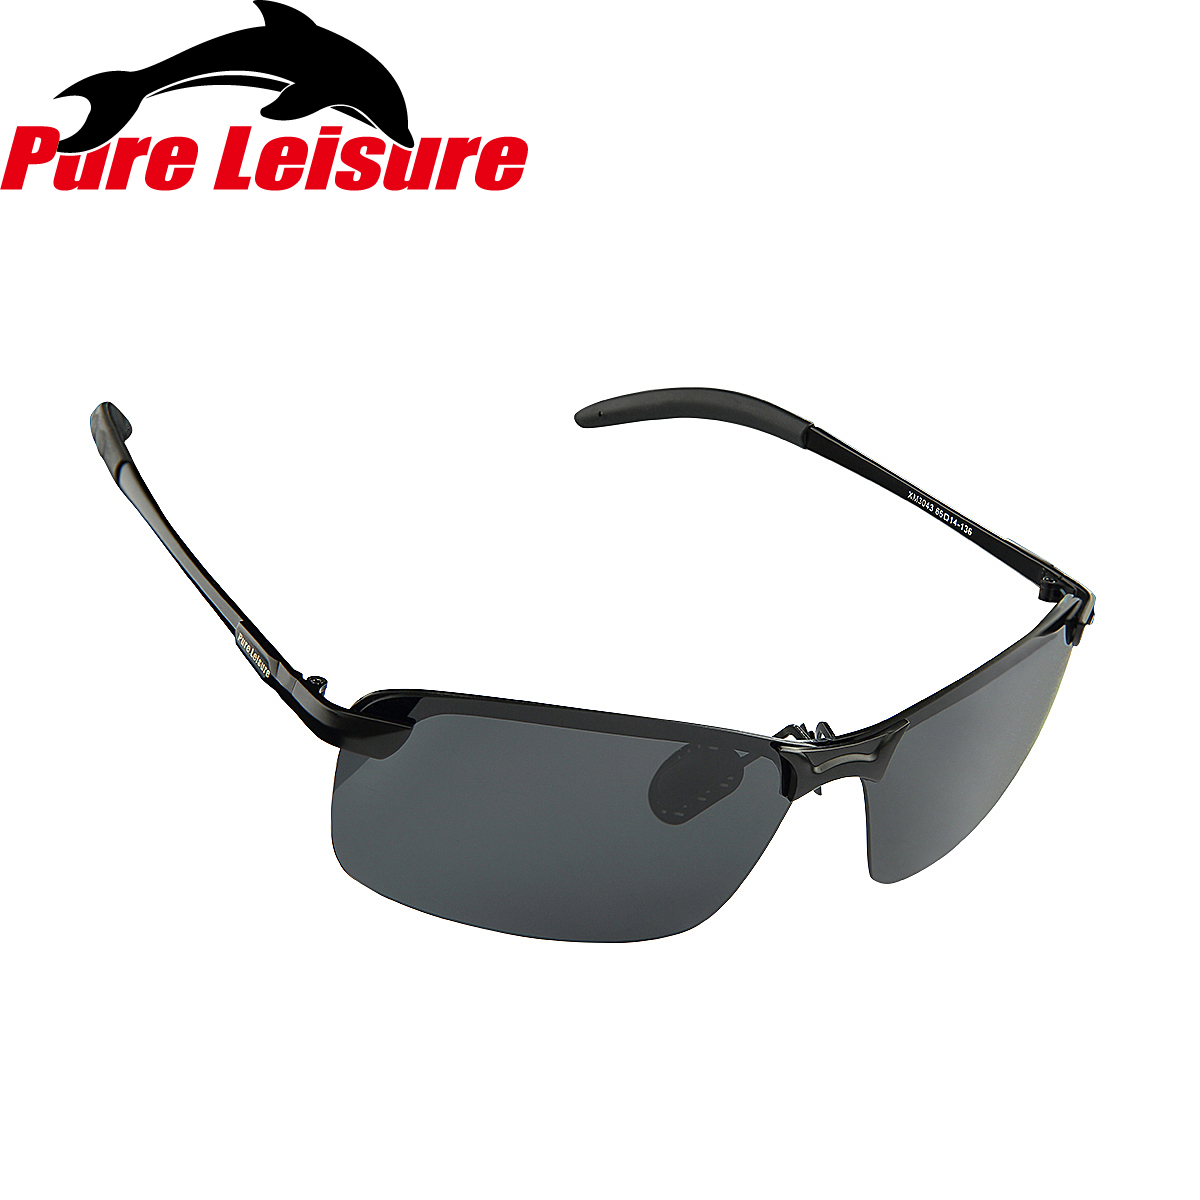 PureLeisure Fishing Men Sport Sunglasses Camo Mens Glasses Oculos Para Pesca Sunglasses Men Polarized Fishing Sportsokken